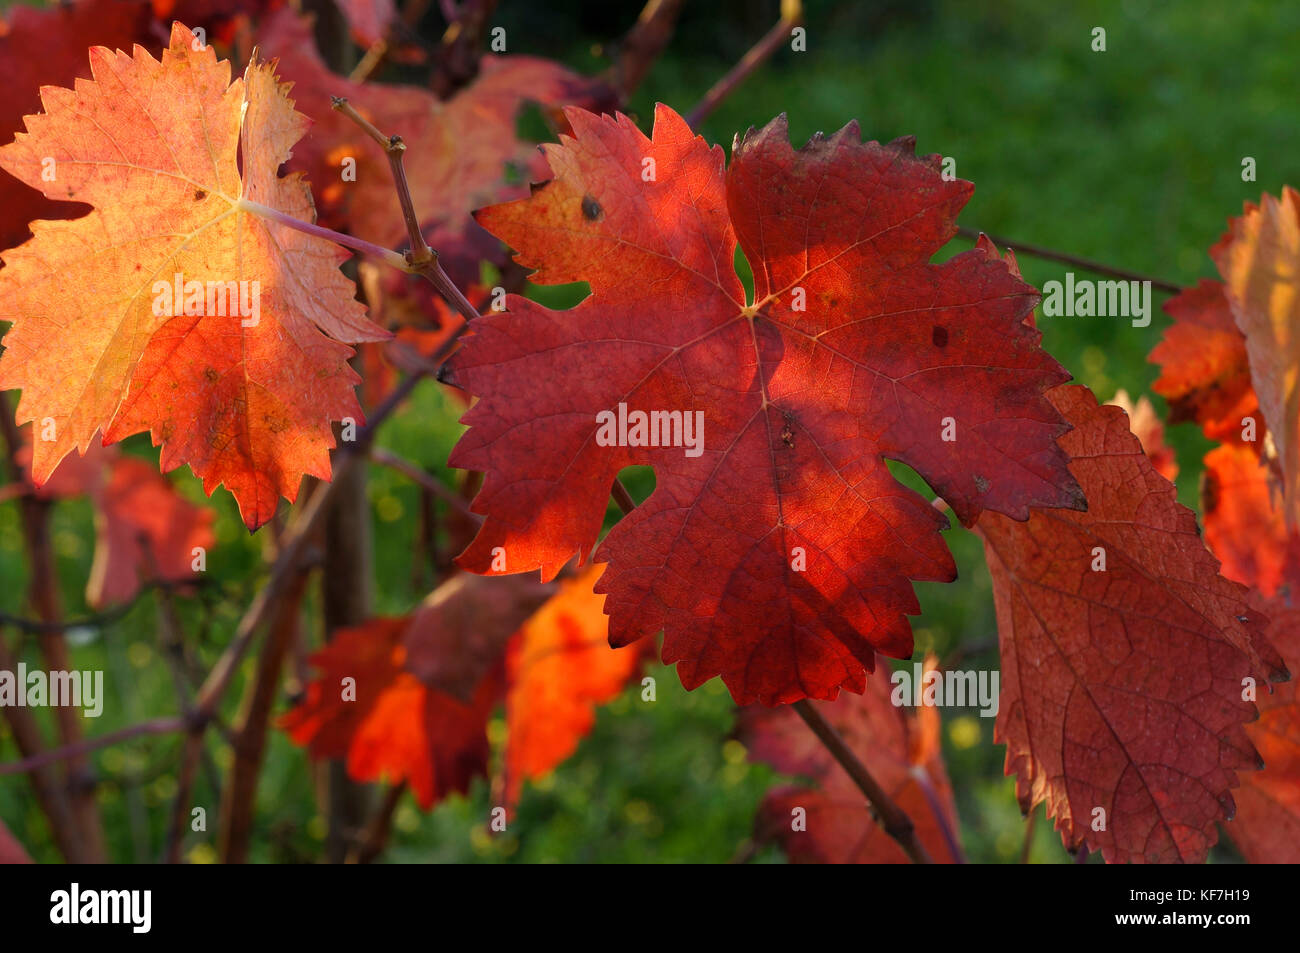 autumn time vines with leaves in shades of yellow red and orange